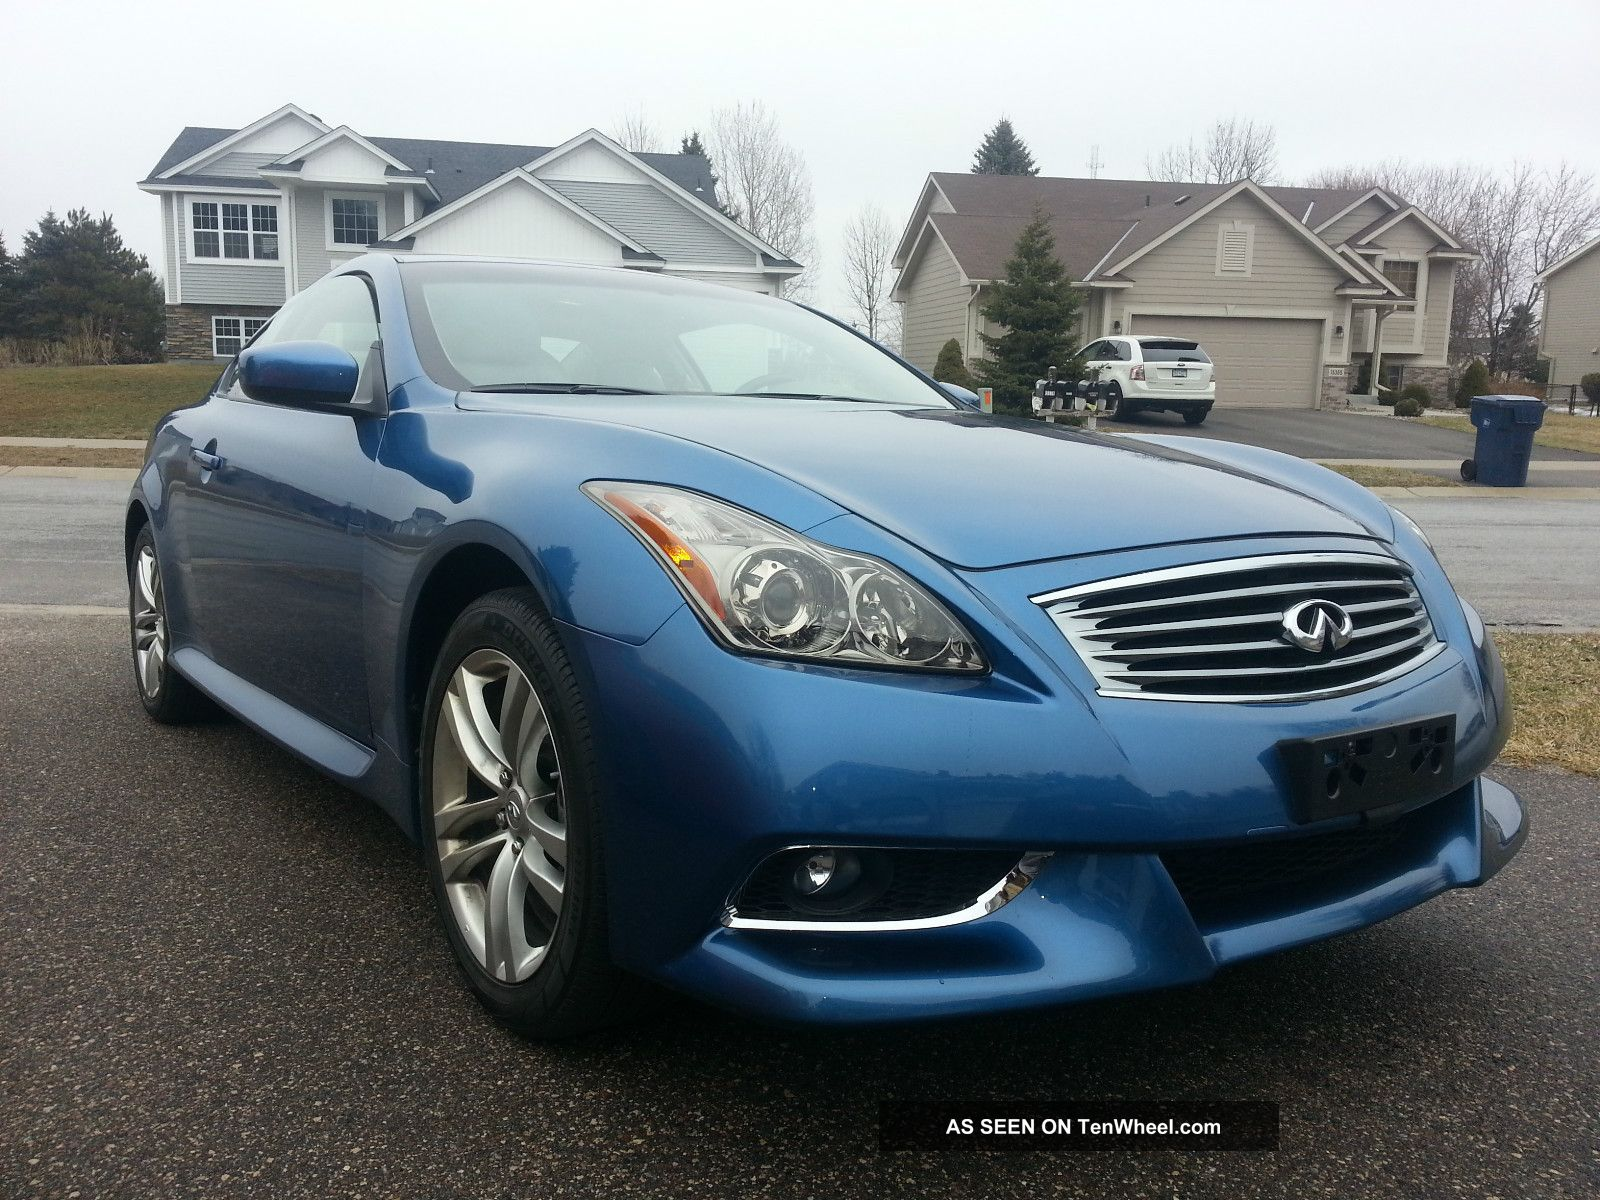 2011 infinity g37x coupe awd. Black Bedroom Furniture Sets. Home Design Ideas